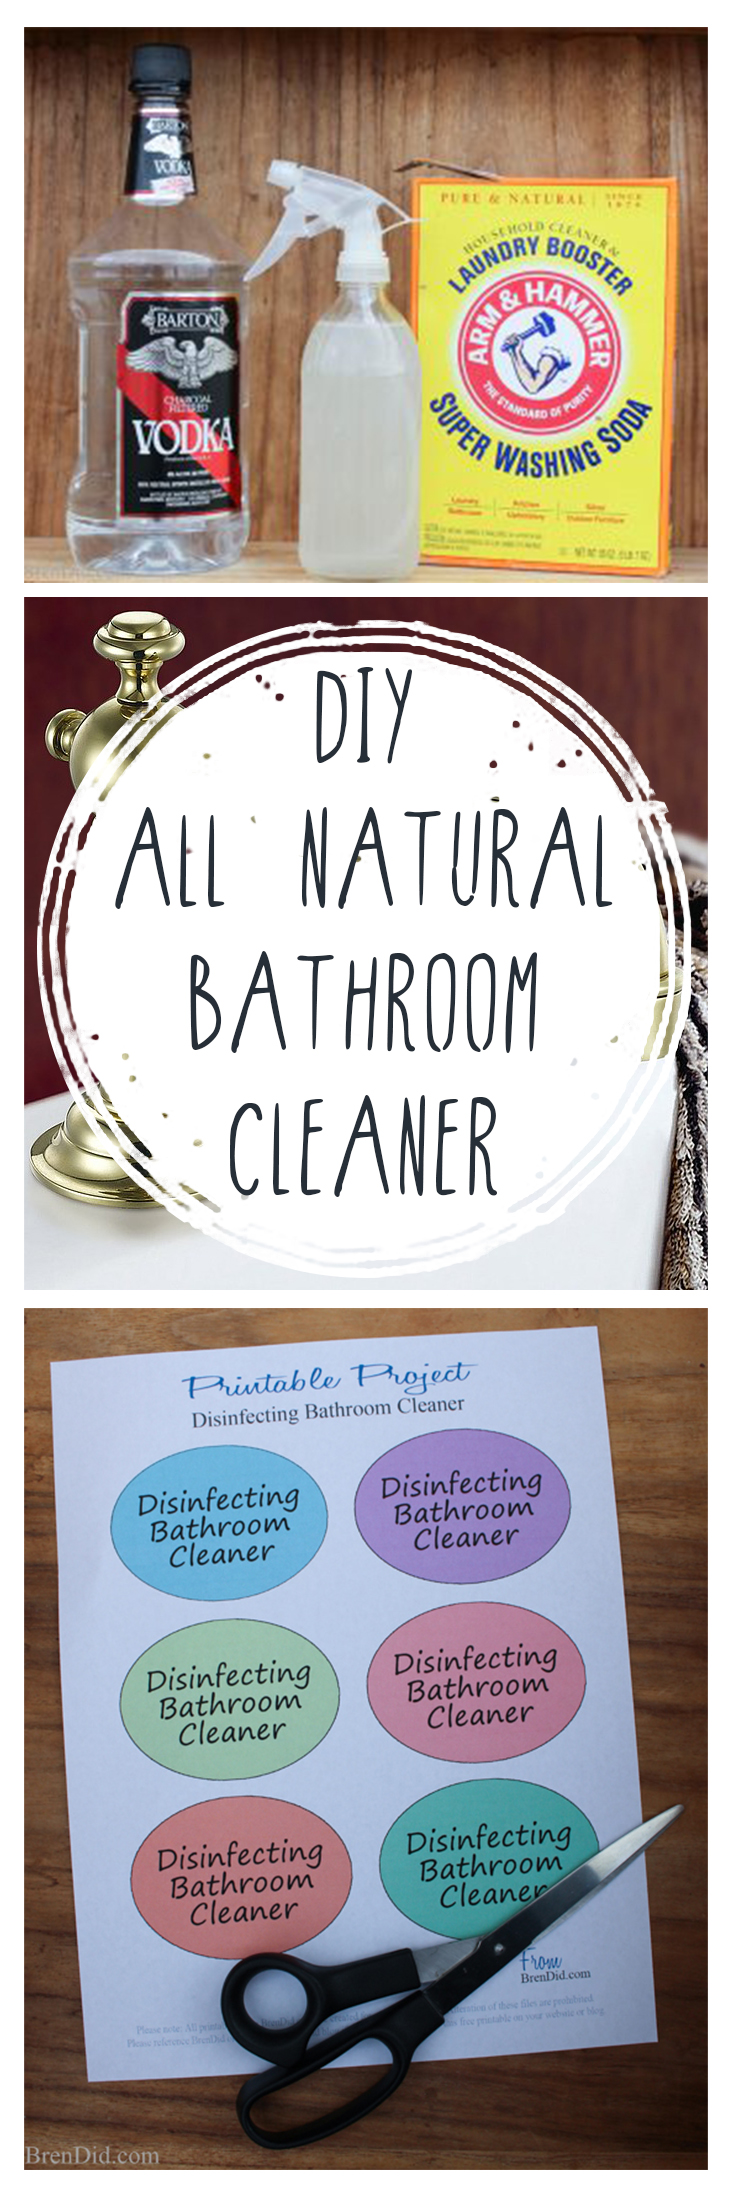 All natural bathroom cleaning, natural cleaners, DIY natural cleaner, popular pin, cleaning tips, cleaning hacks, natural cleaning tips.